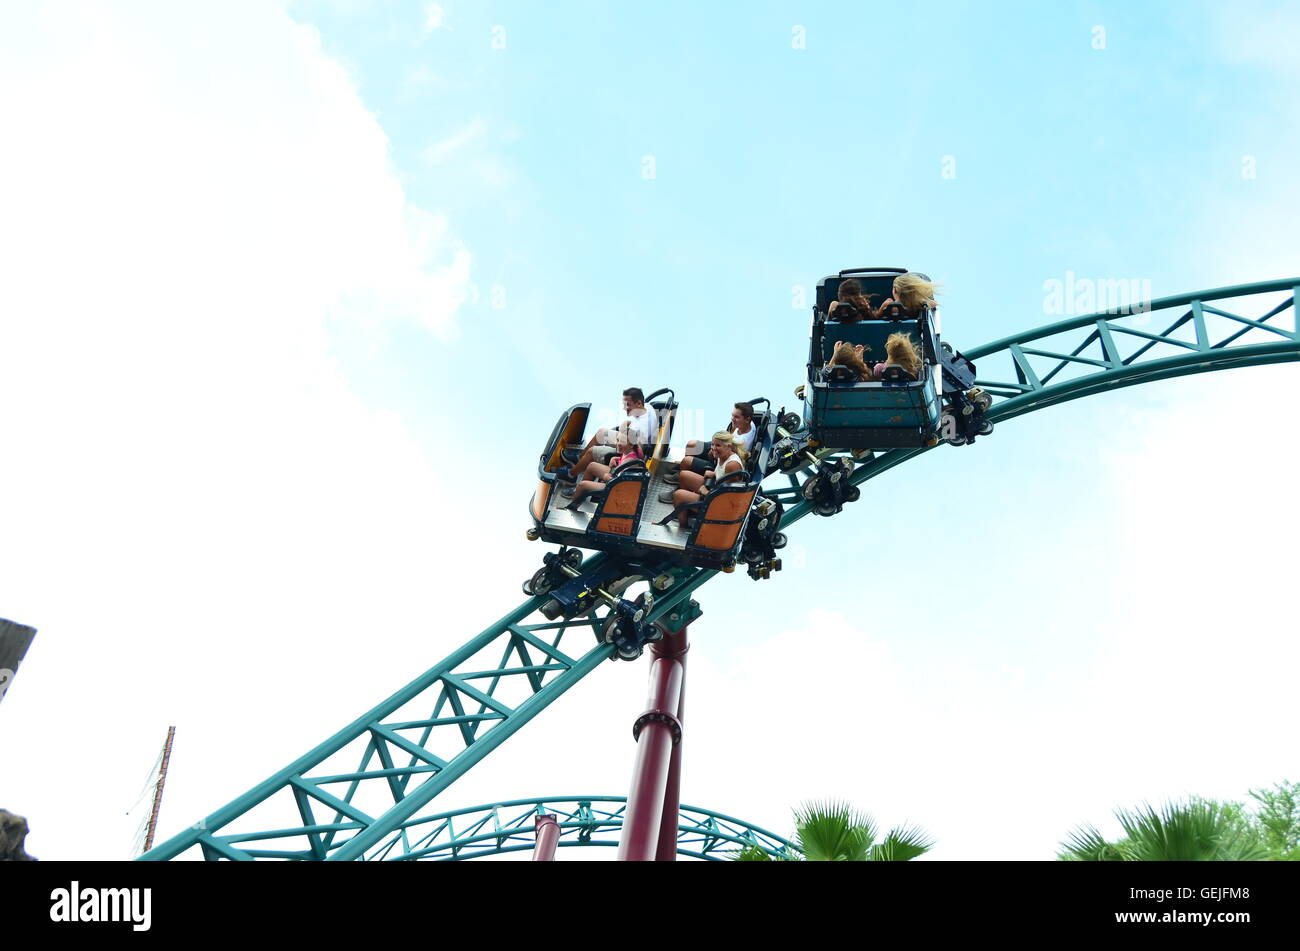 Cobra's Curse spin coaster at Busch Gardens Tampa Florida, the only one of its kind in the world - Stock Image